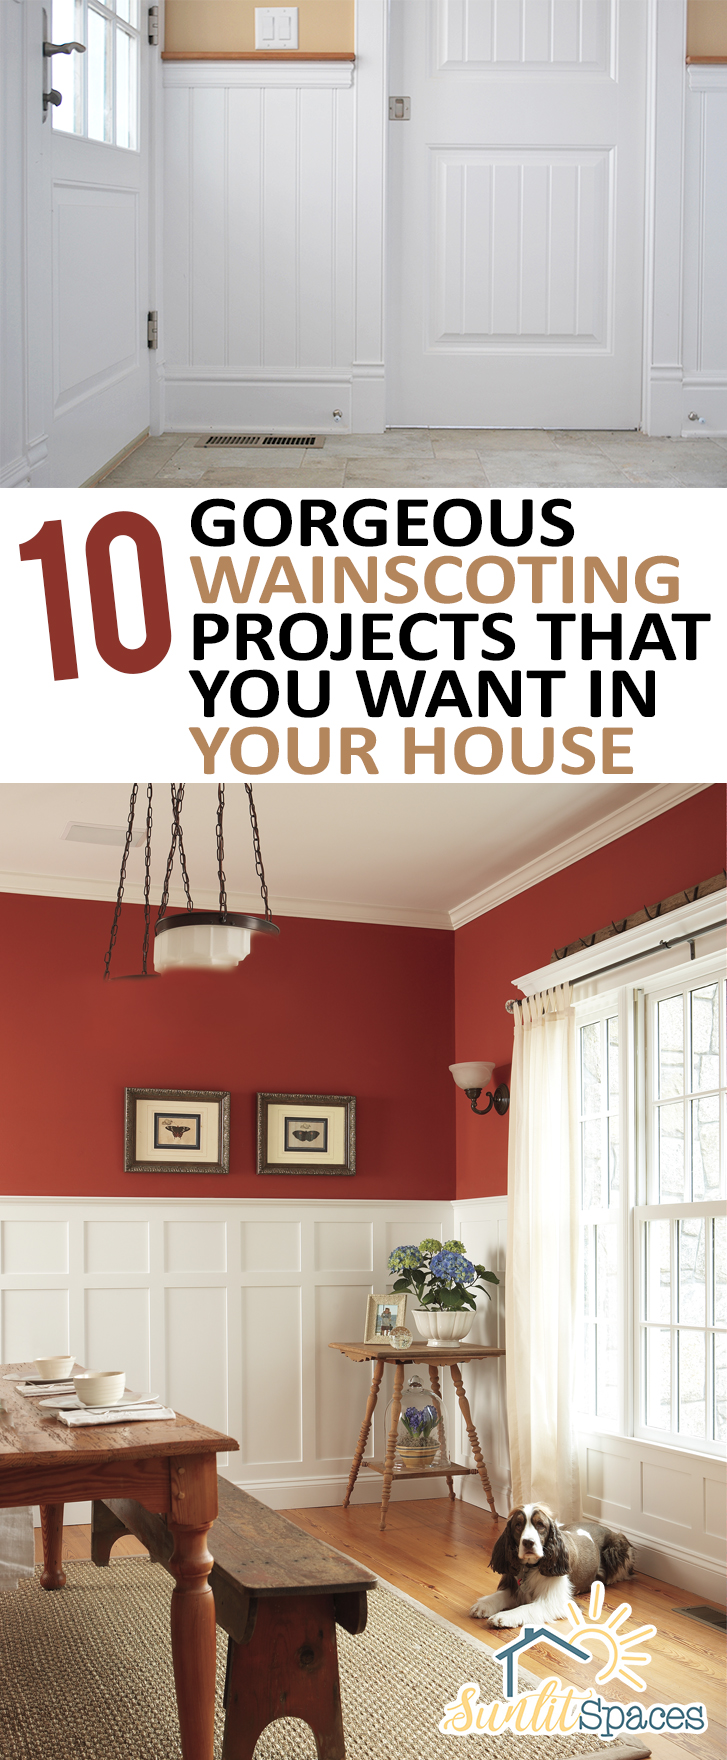 10 Gorgeous Wainscoting Projects that You Want in Your House| #DIYHome #DIYHomeDecor #DIYHomeDecorProjects #HomeDecorHacks #HomeImprovementProjects #HomeImprovementDIY